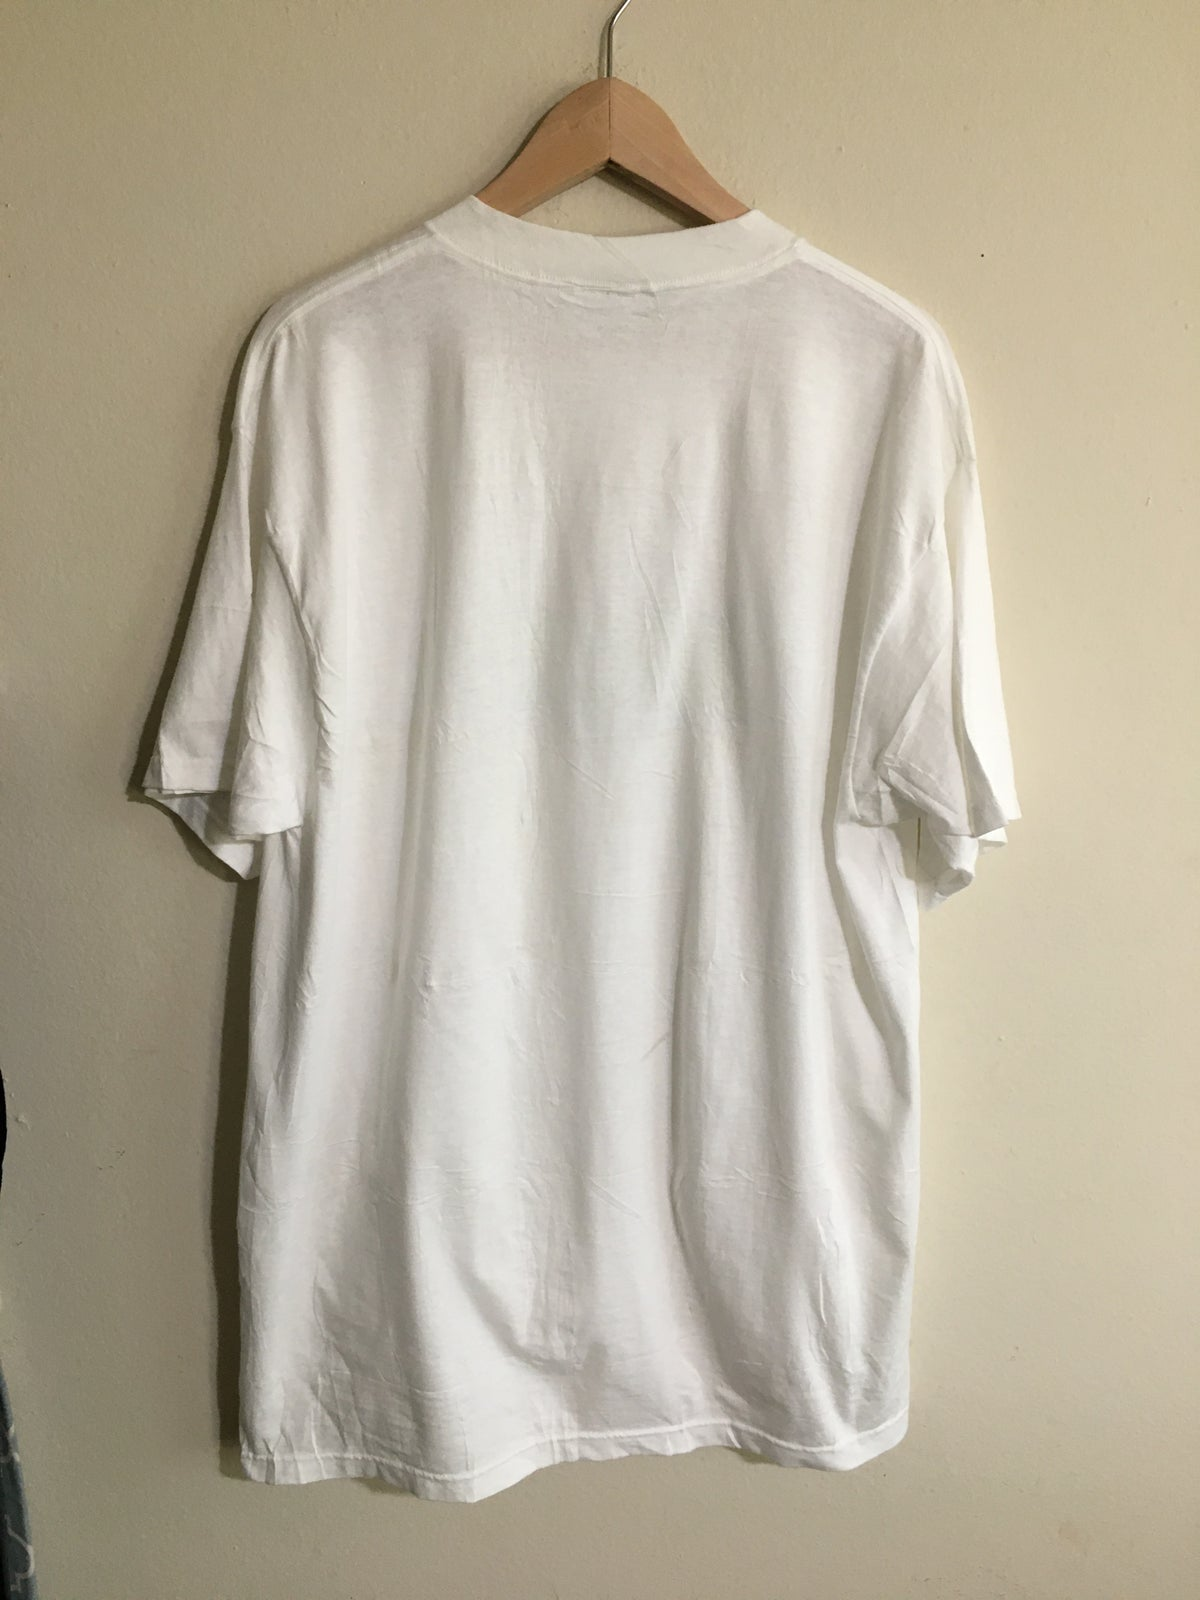 1997 Deadstock Sublime Second Hand Smoke Promo Tee